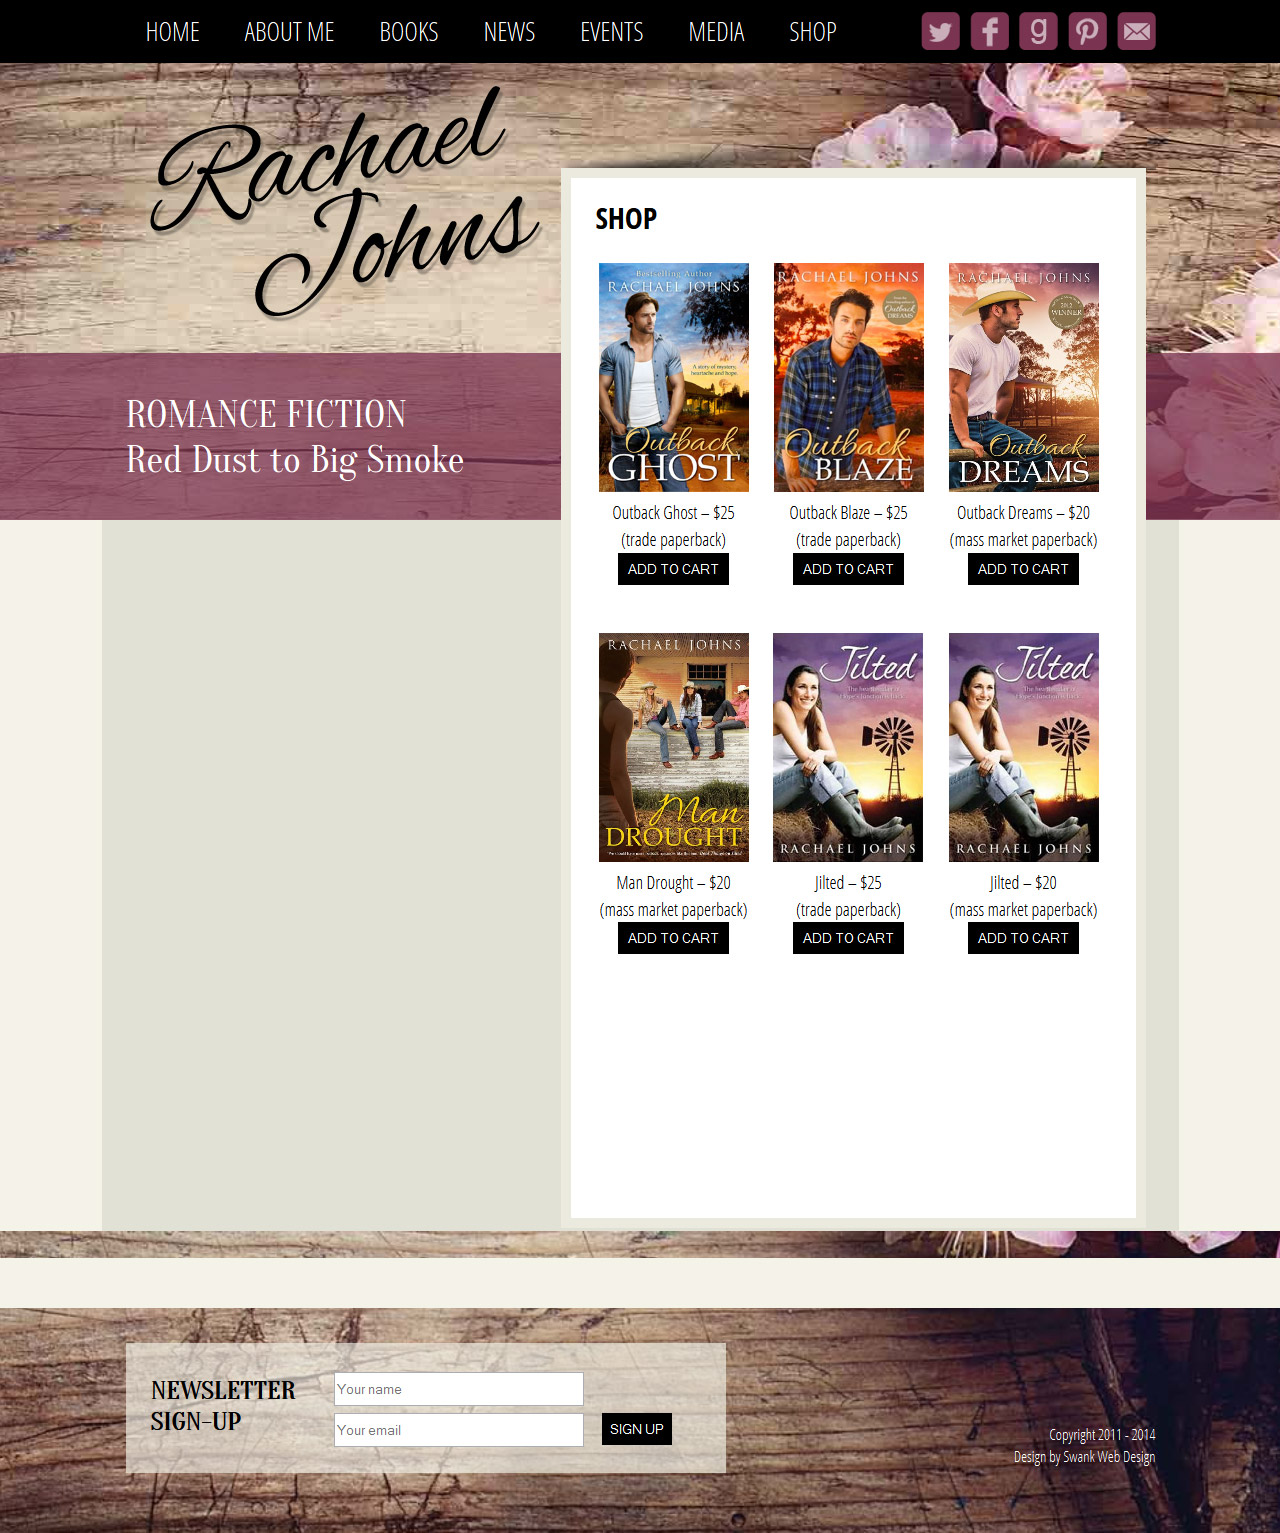 Website Design for Author Rachael Johns by Swank Web Design